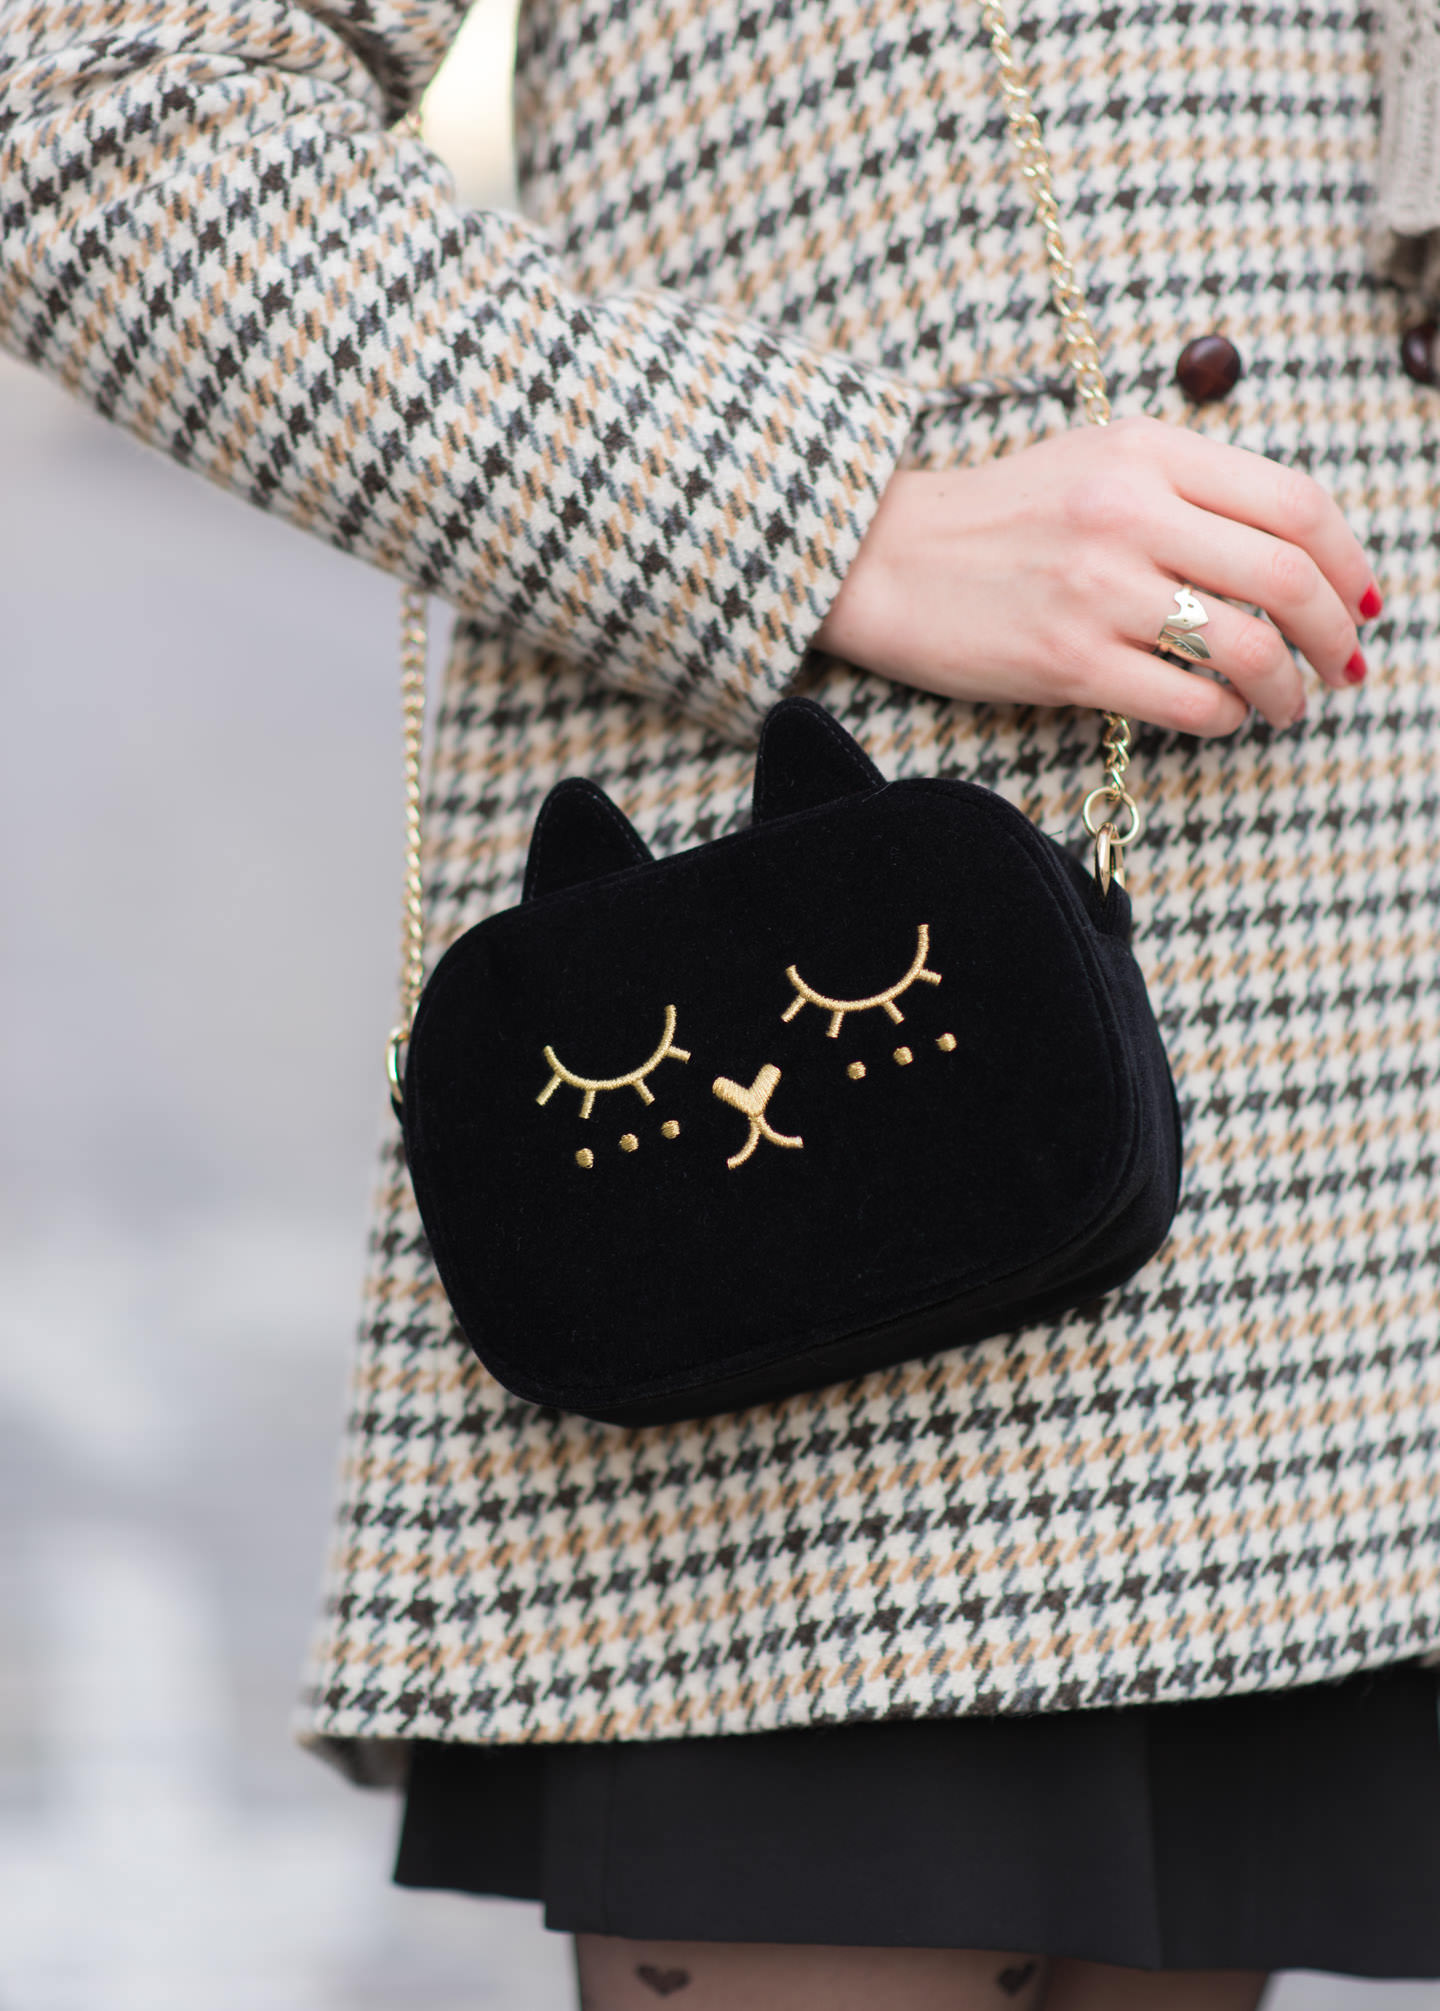 Blog-Mode-And-The-City-Lifestyle-Cinq-Petites-Choses-196-sac-asos-chat